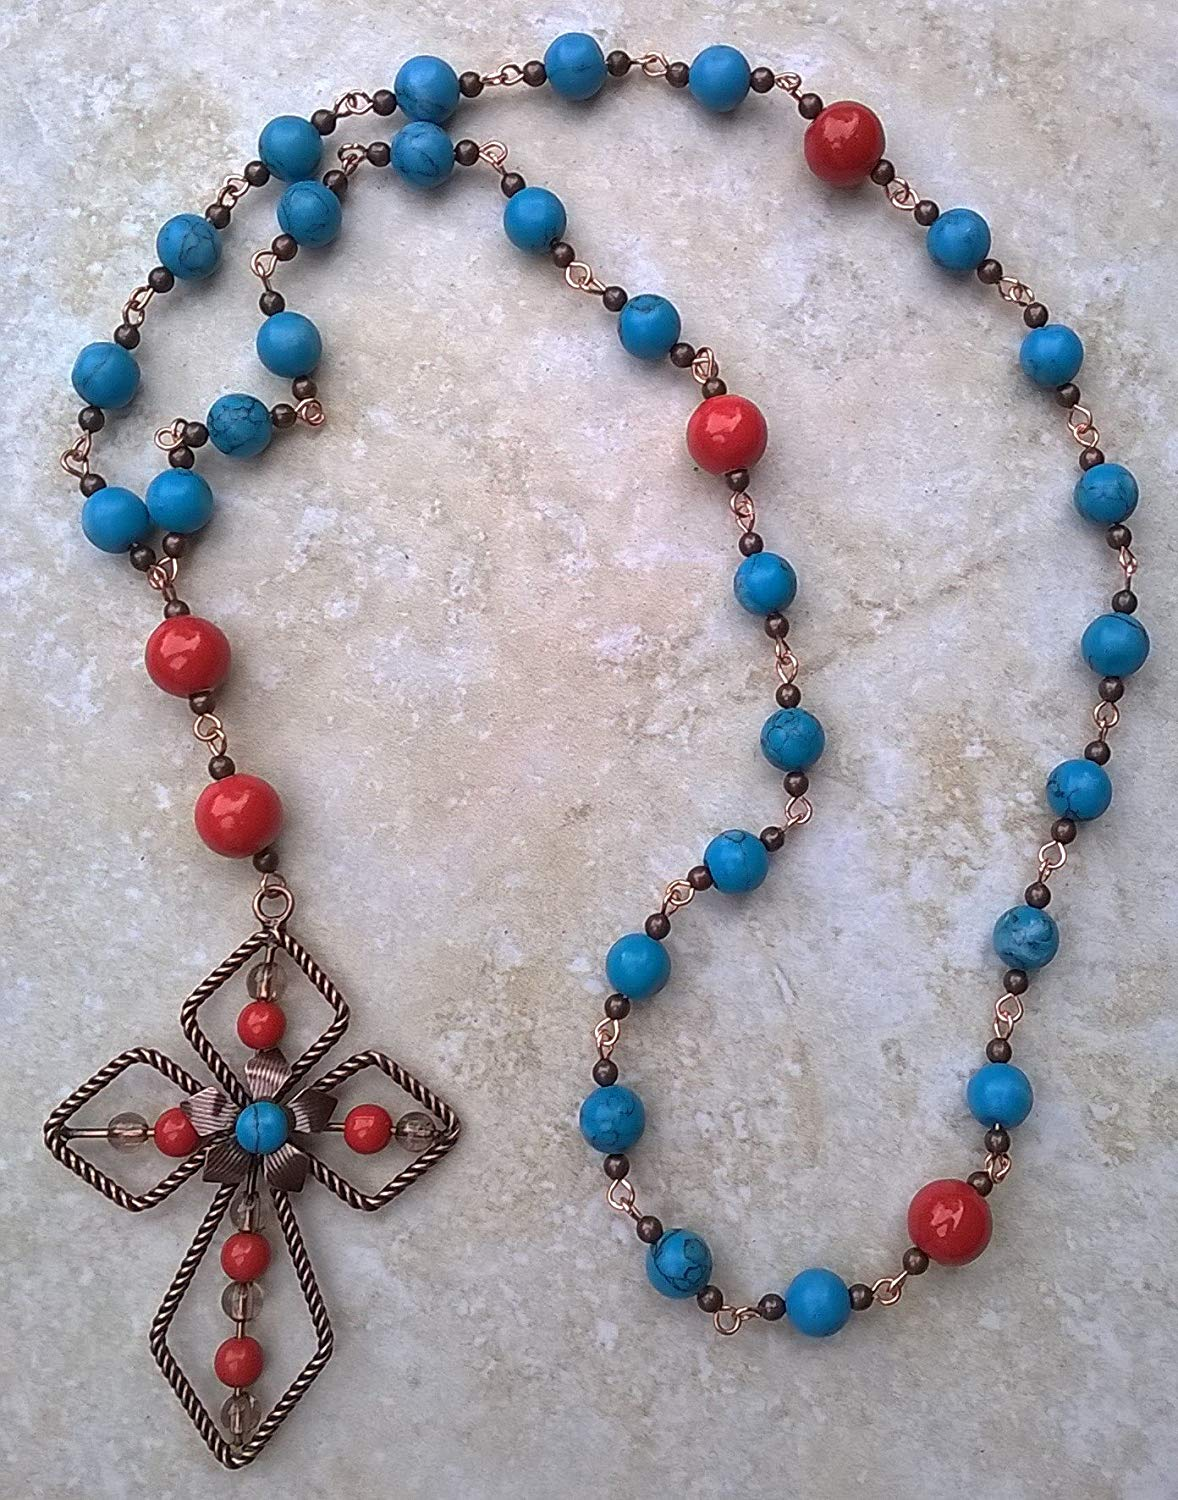 Anglican Prayer Beads in Red, Copper, and Turquoise